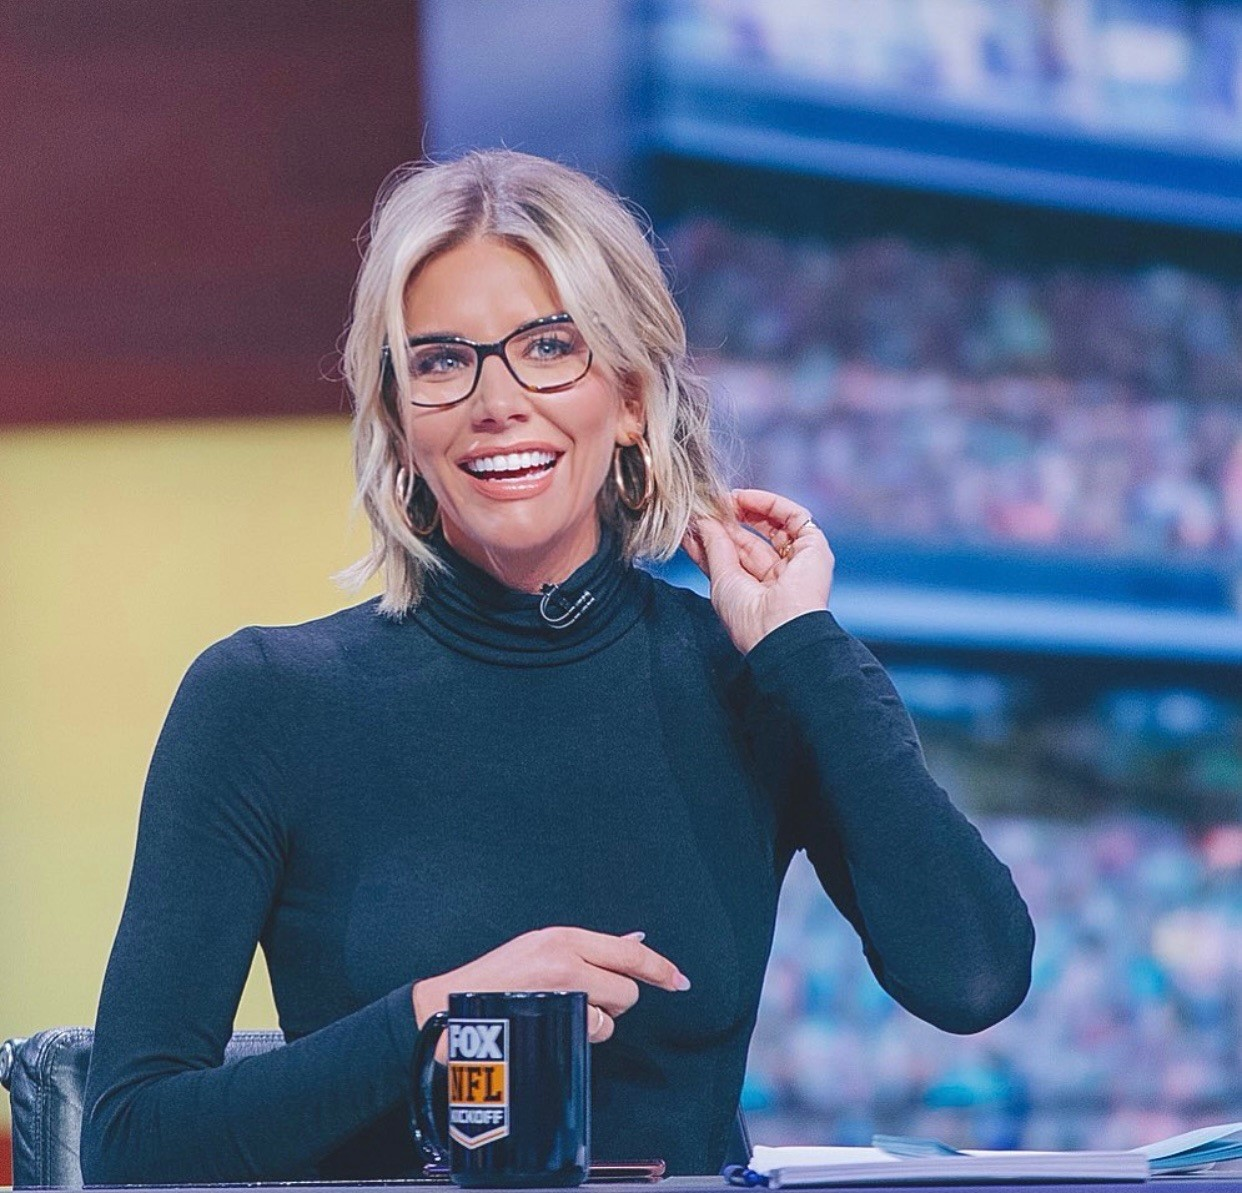 water4Her Sports Host and Broadcaster Ambassador Charissa Thompson - FOX NFL KICKOFF Host and Broadcaster